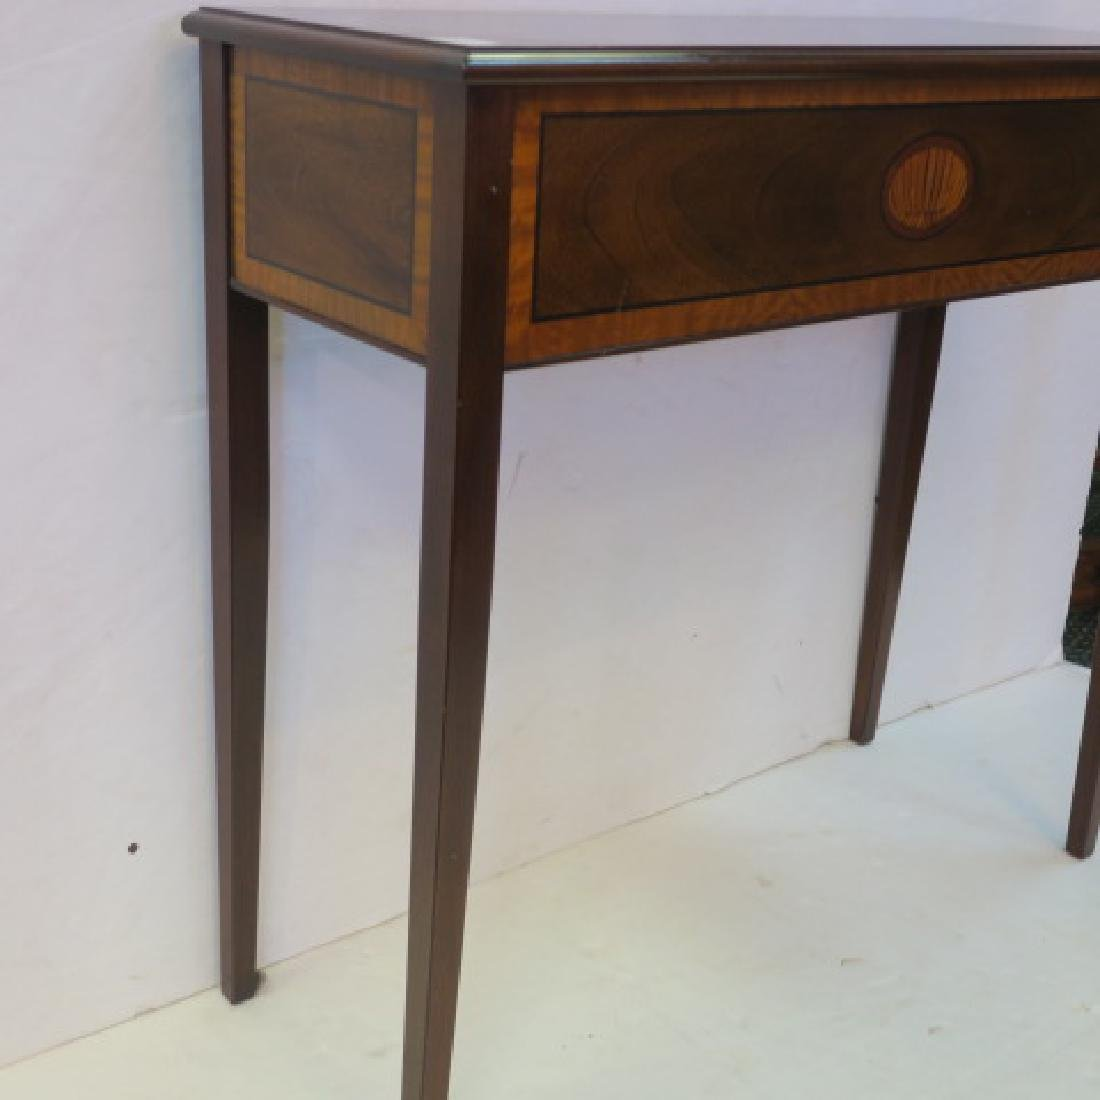 Petite Traditional Console Table: - 3